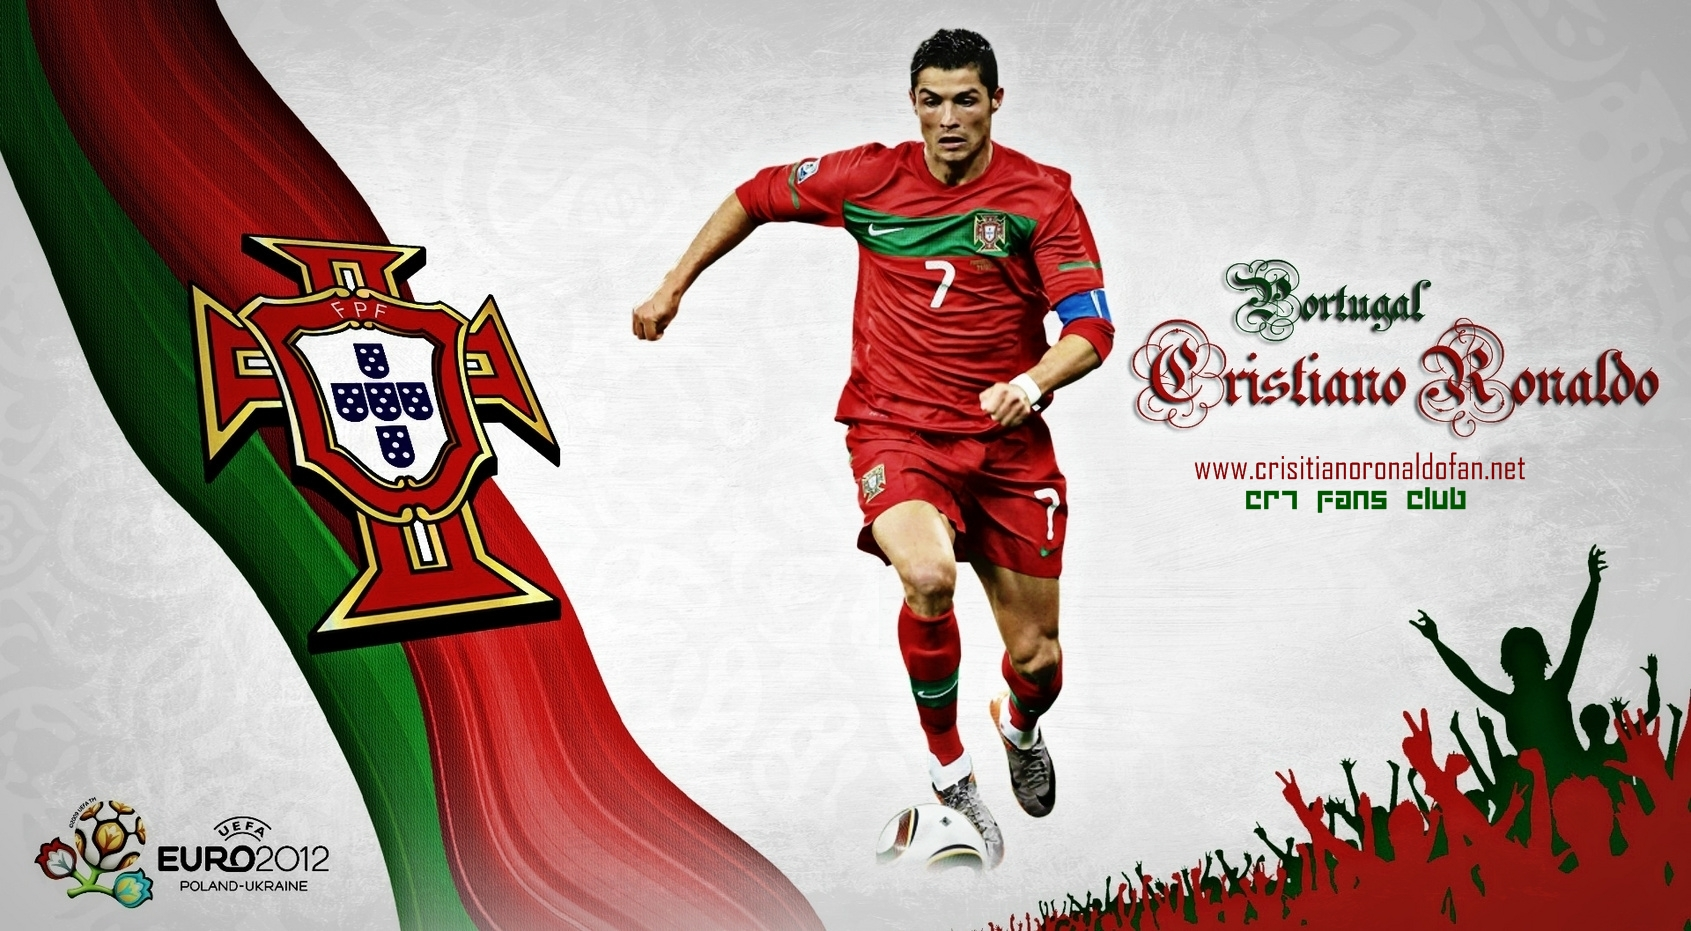 Wallpaper cr7 gear up for euro 2012 cristiano - C ronaldo wallpaper portugal ...